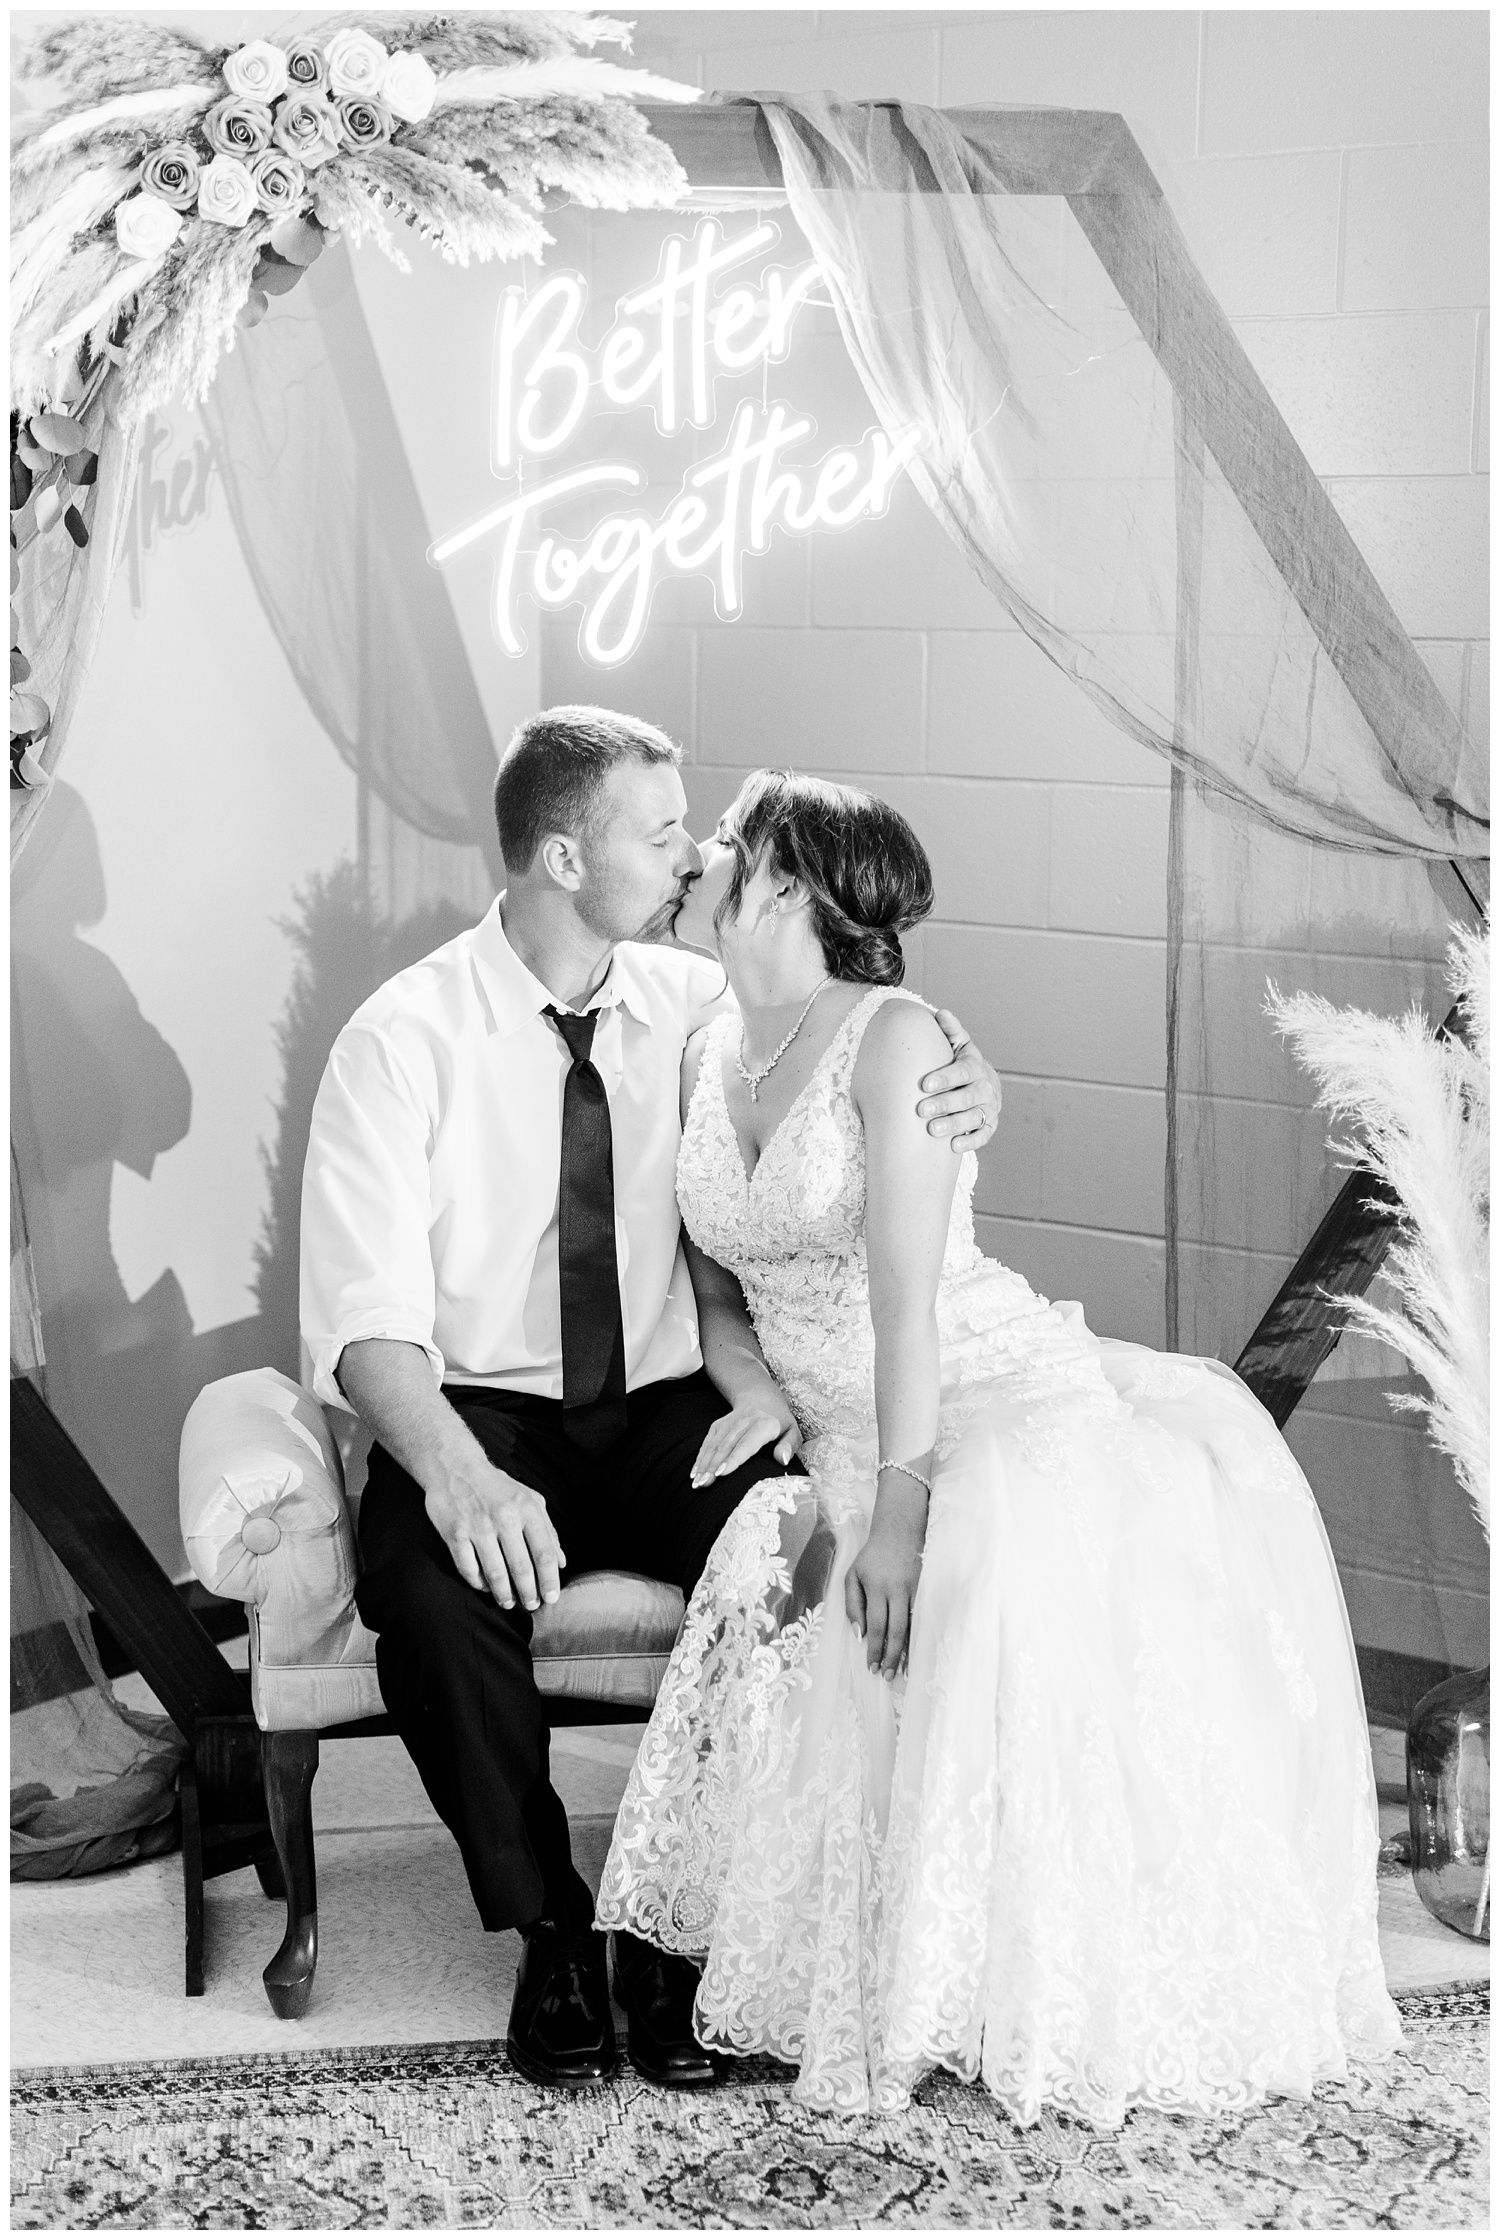 """Mr. & Mrs. Redmond kiss under a custom boho themed photo backdrop featuring a wooden hexagon arch with draping cloths, """"Better Together"""" neon sign, rose and pampas grass arrangements, antique rug and vintage settee   CB Studio"""